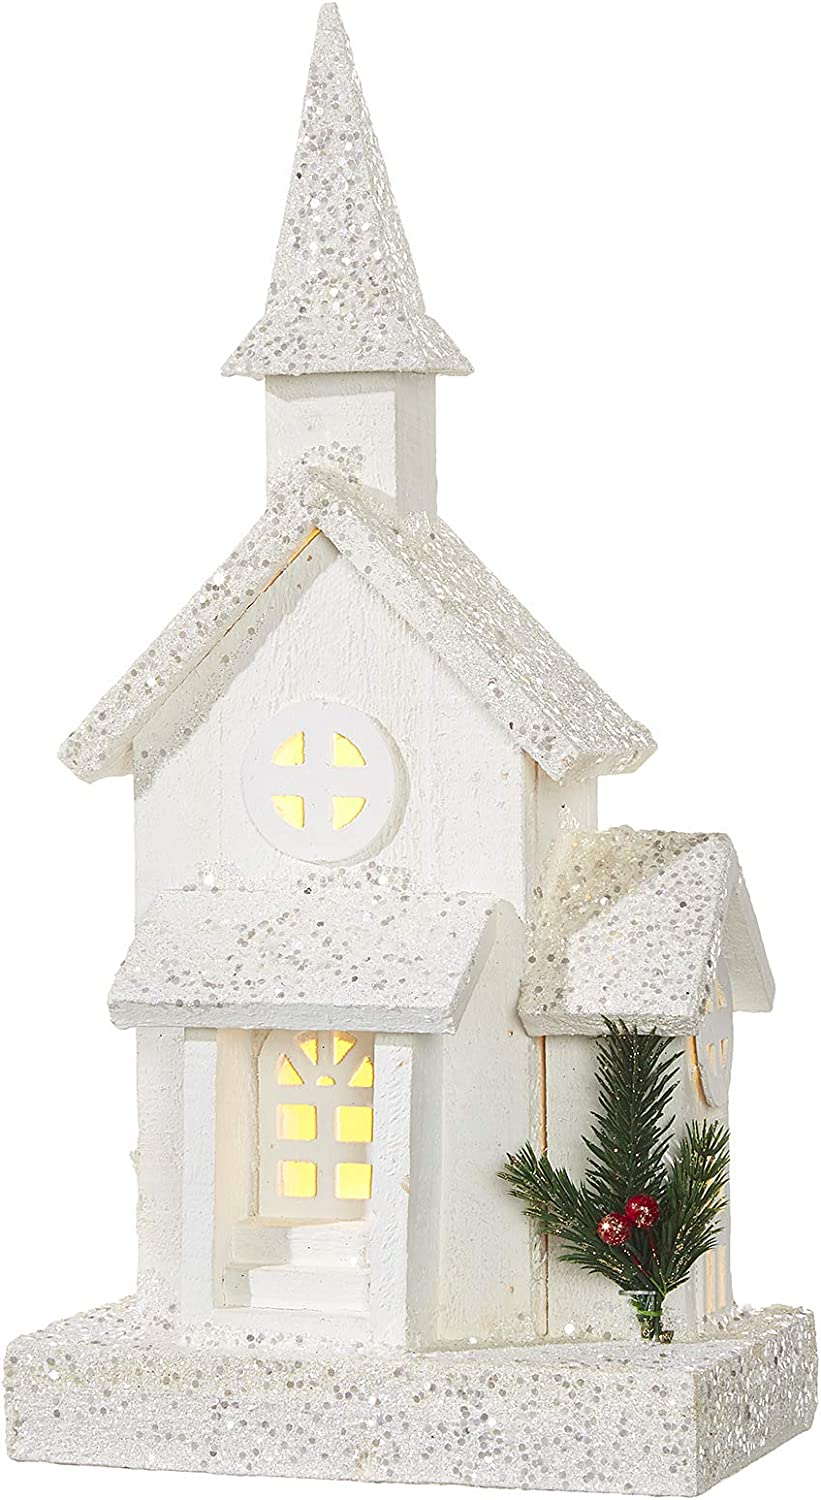 RAZ Imports 17 White Wooden Lighted Church Christmas Tabletop Decor with Glitter Snow